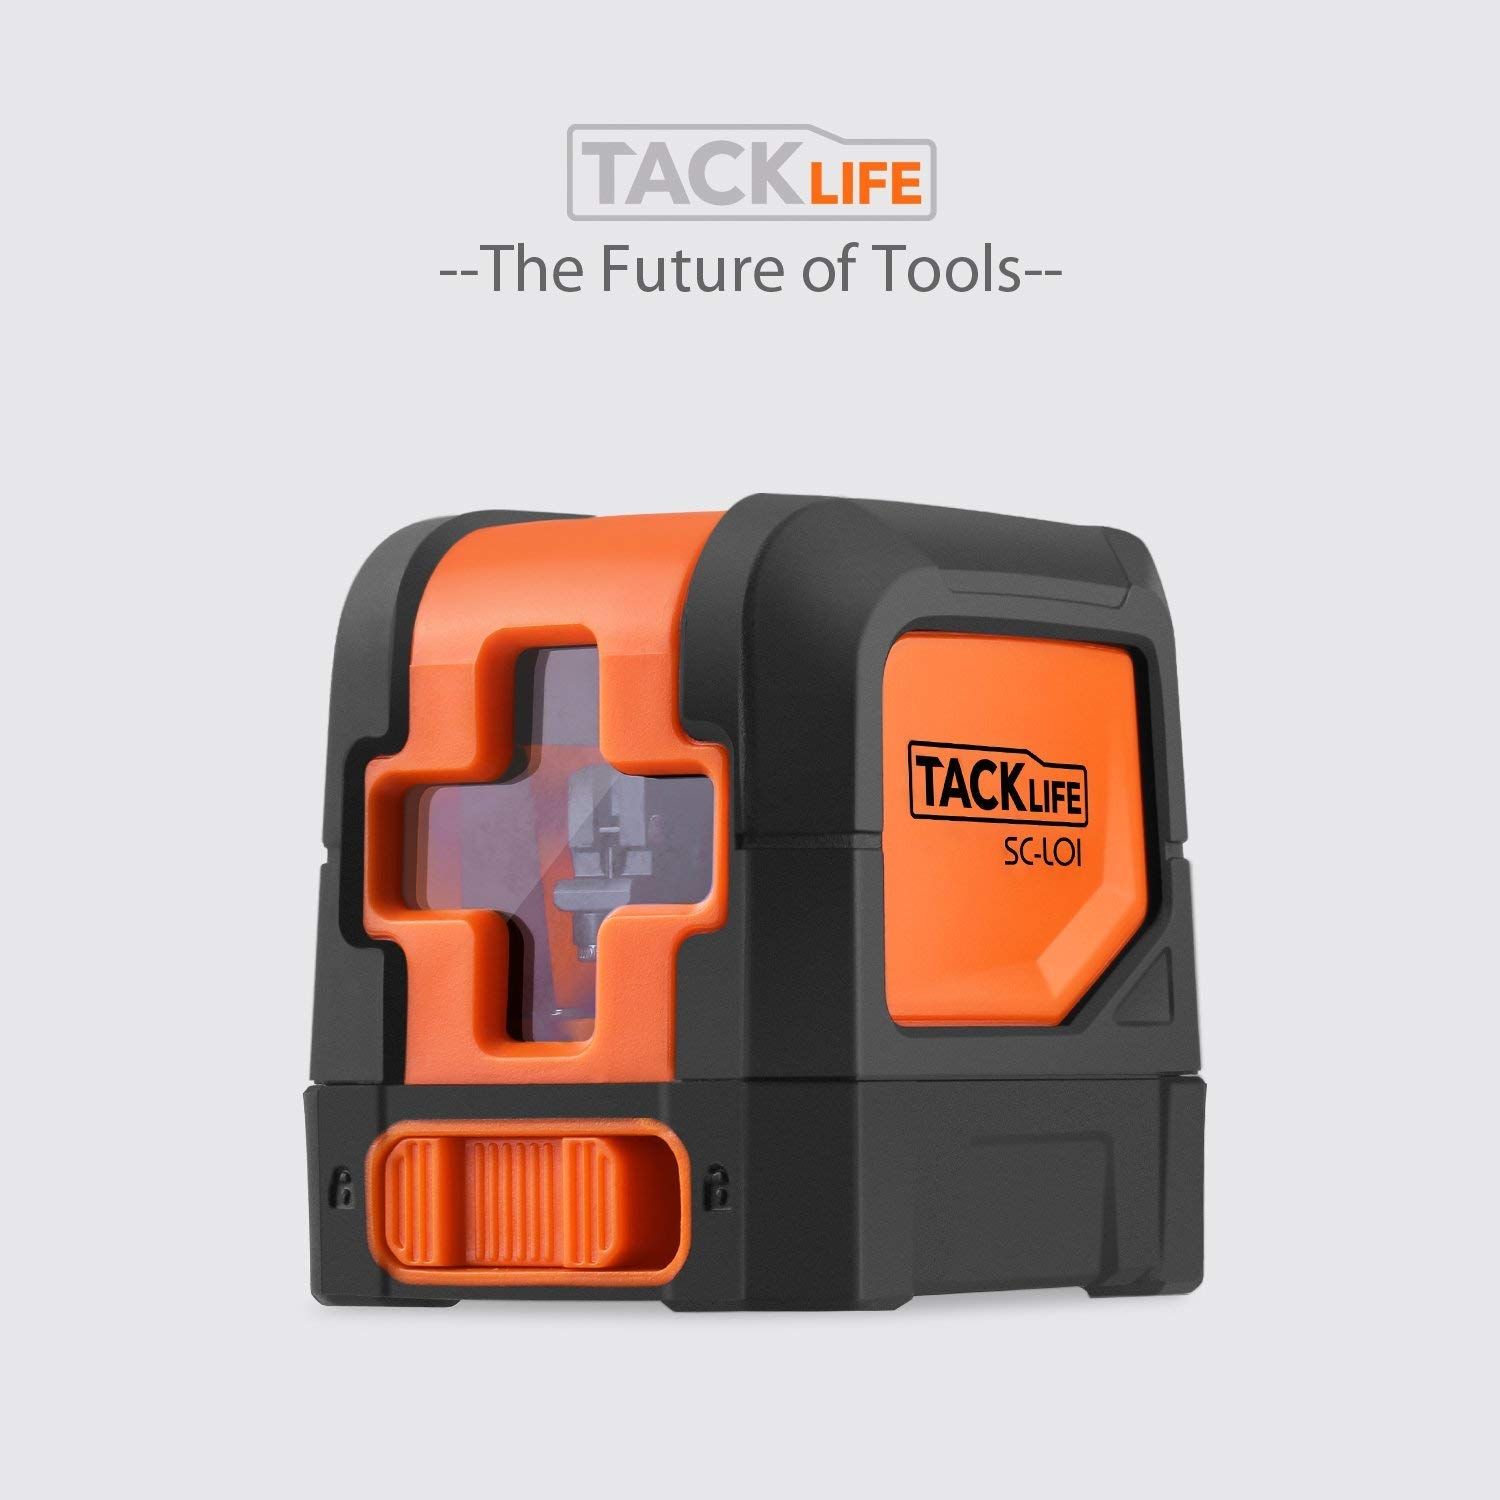 Tacklife SC-L01-50 Feet Laser Level Self-Leveling Horizontal and Vertical Cross-Line Laser - Magnetic Mount Base and Carrying Pouch, Battery Included by TACKLIFE (Image #8)